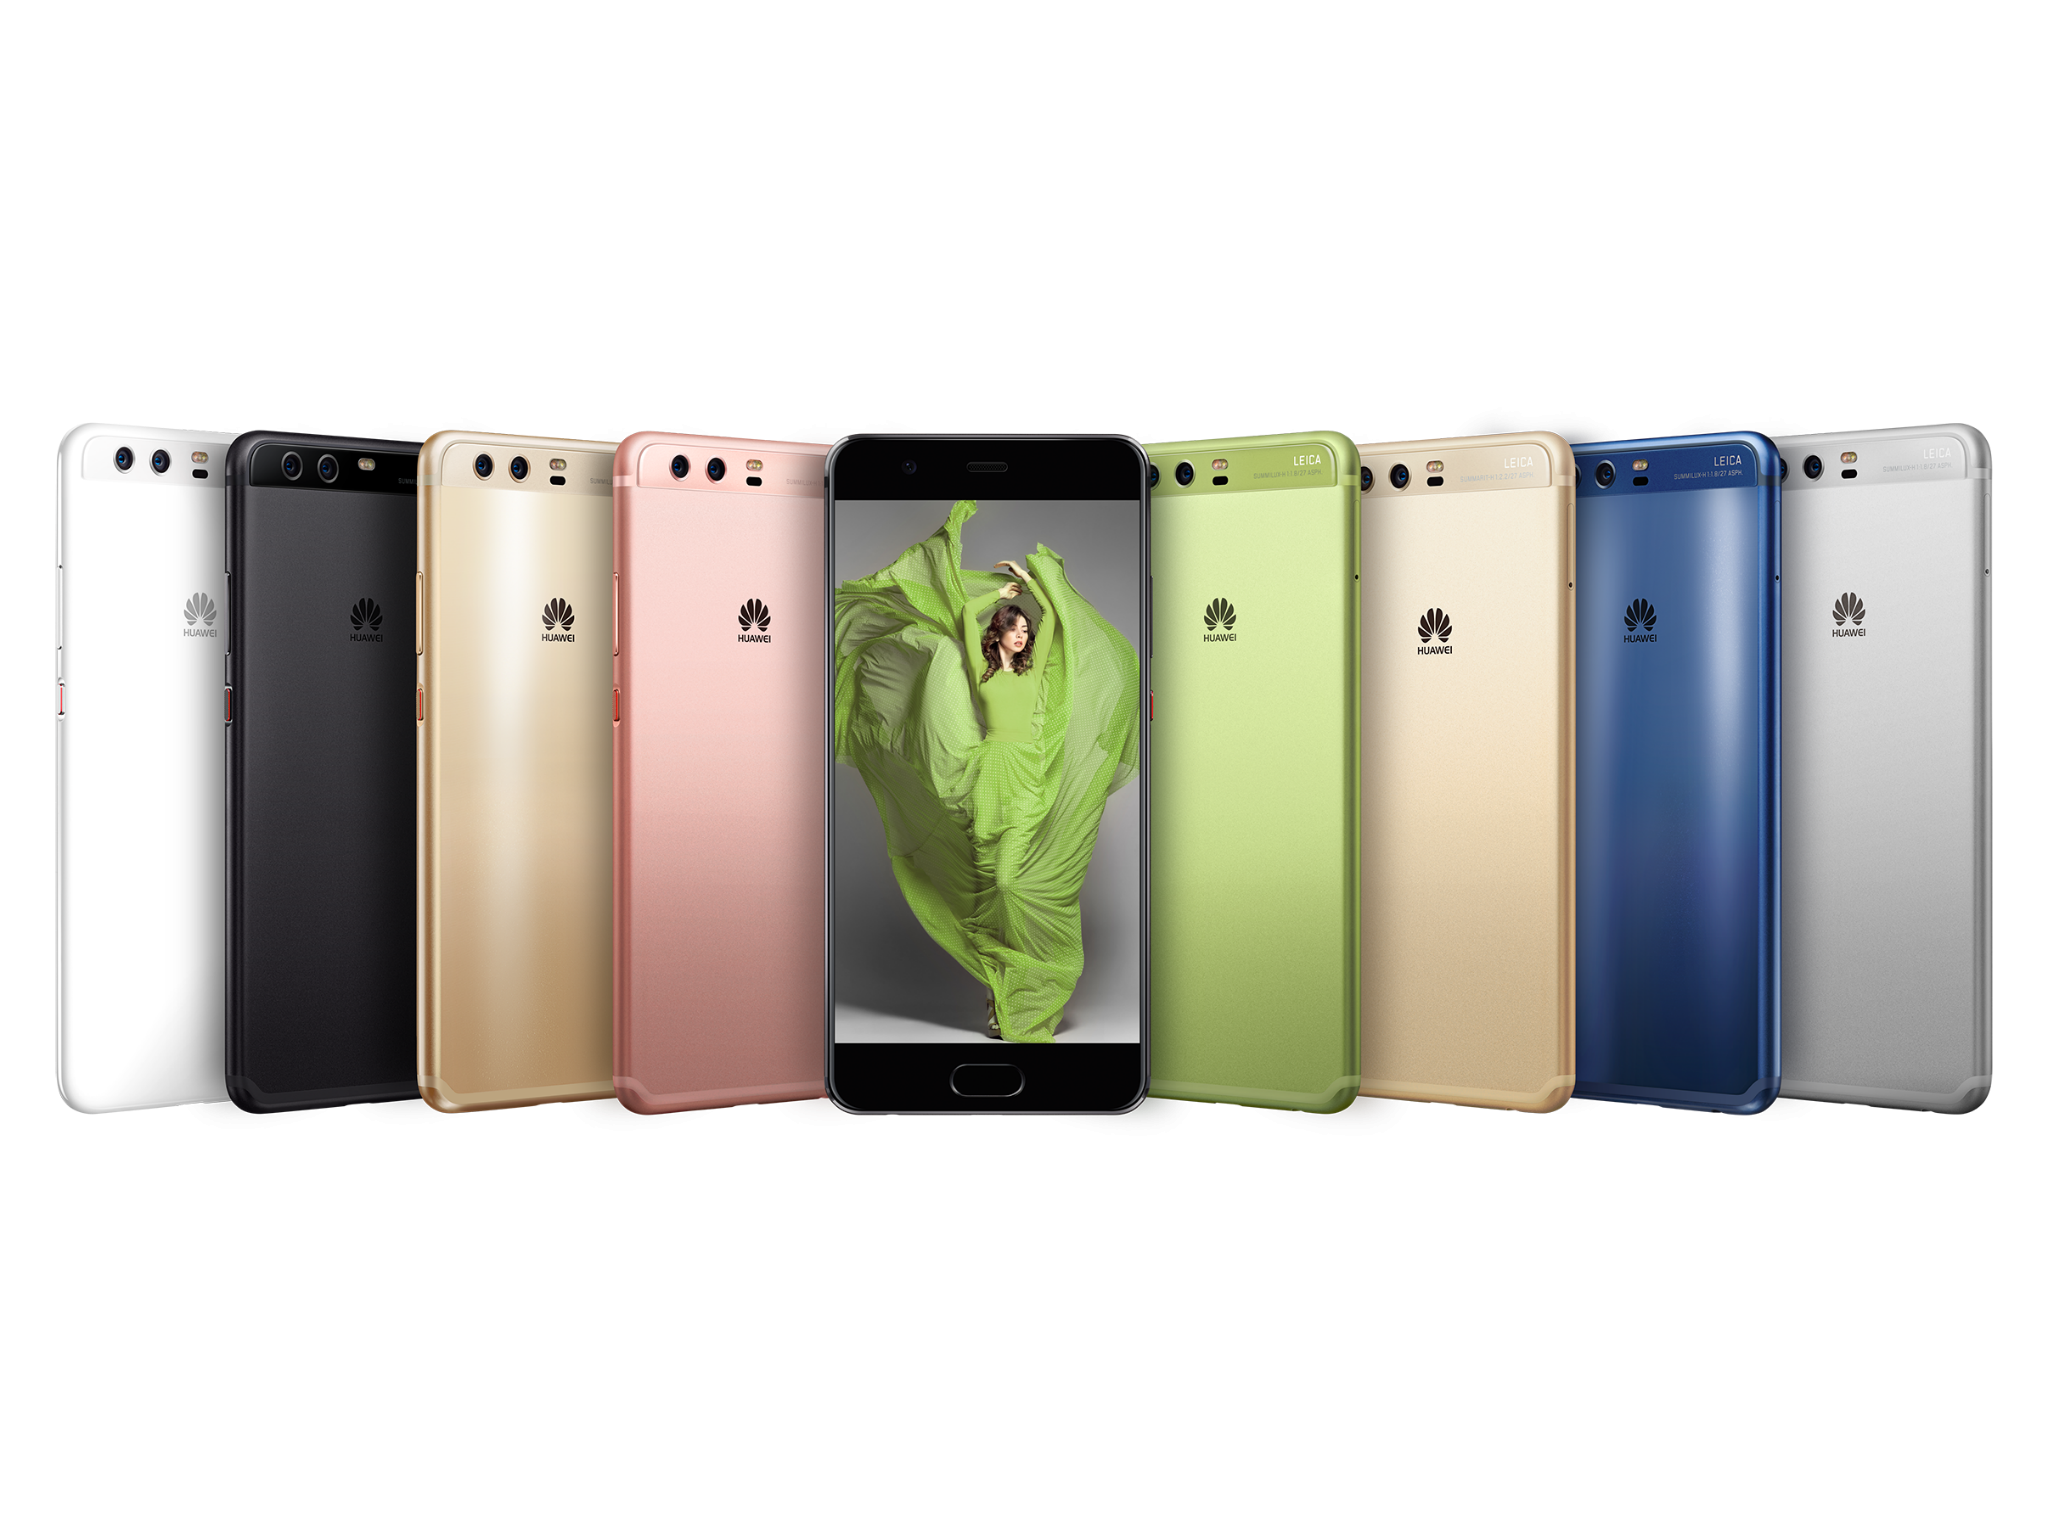 Mystic silver and company - Huawei P10 Chinese Smartphone Aims To Stand Out In Colour Of The Year The Independent